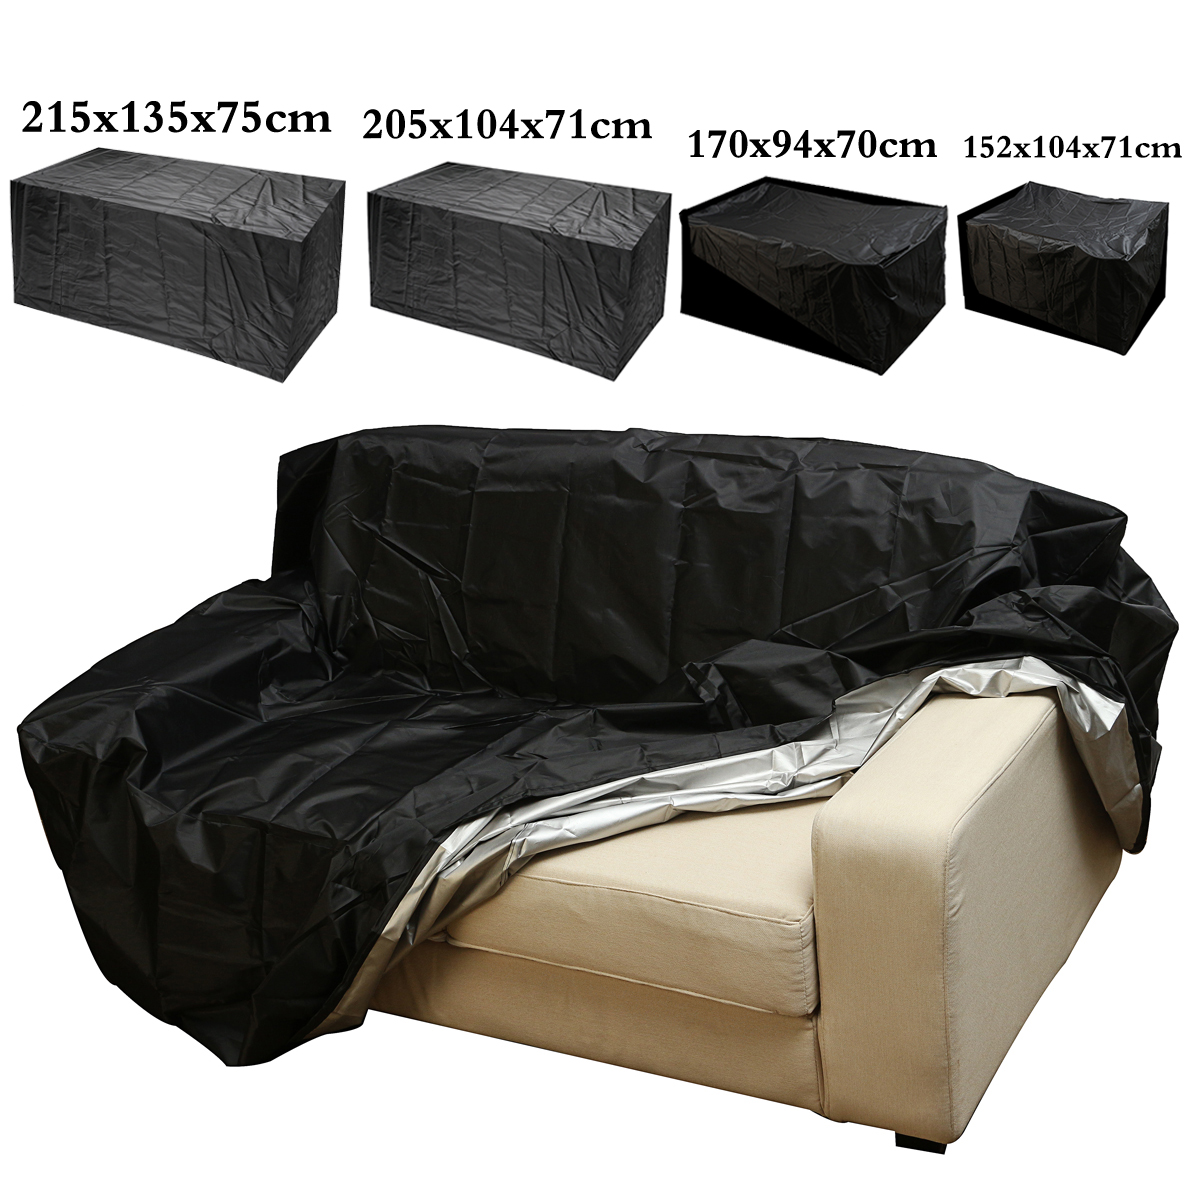 4 Size Beach Outdoor Waterproof Garden Furniture Cover